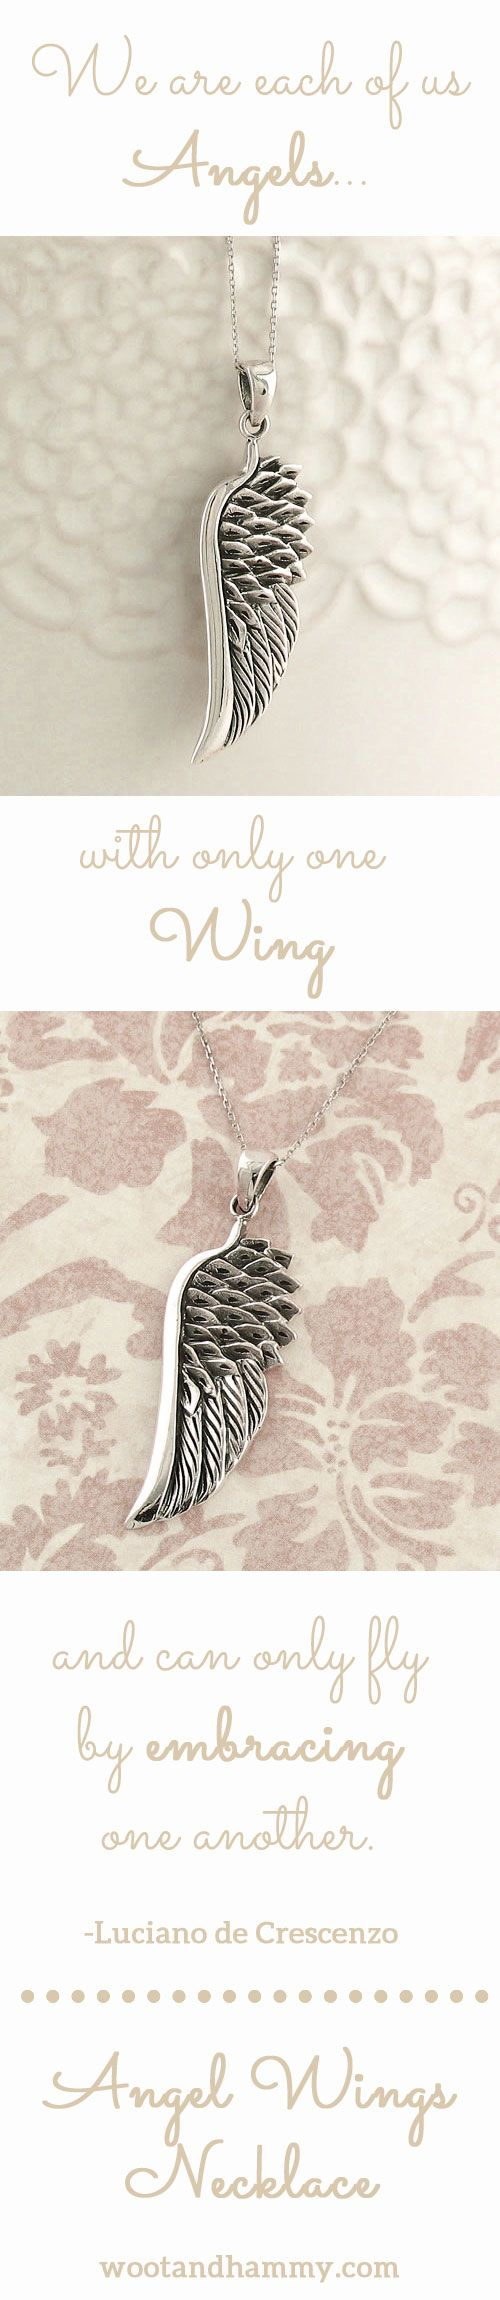 """Pretty angel wings necklace in sterling silver....pinned by ♥ wootandhammy.com, thoughtful jewelry...""""We are each of us Angels, with only one wing, and can only fly by embracing one another."""" -Luciano de Crescenzo"""